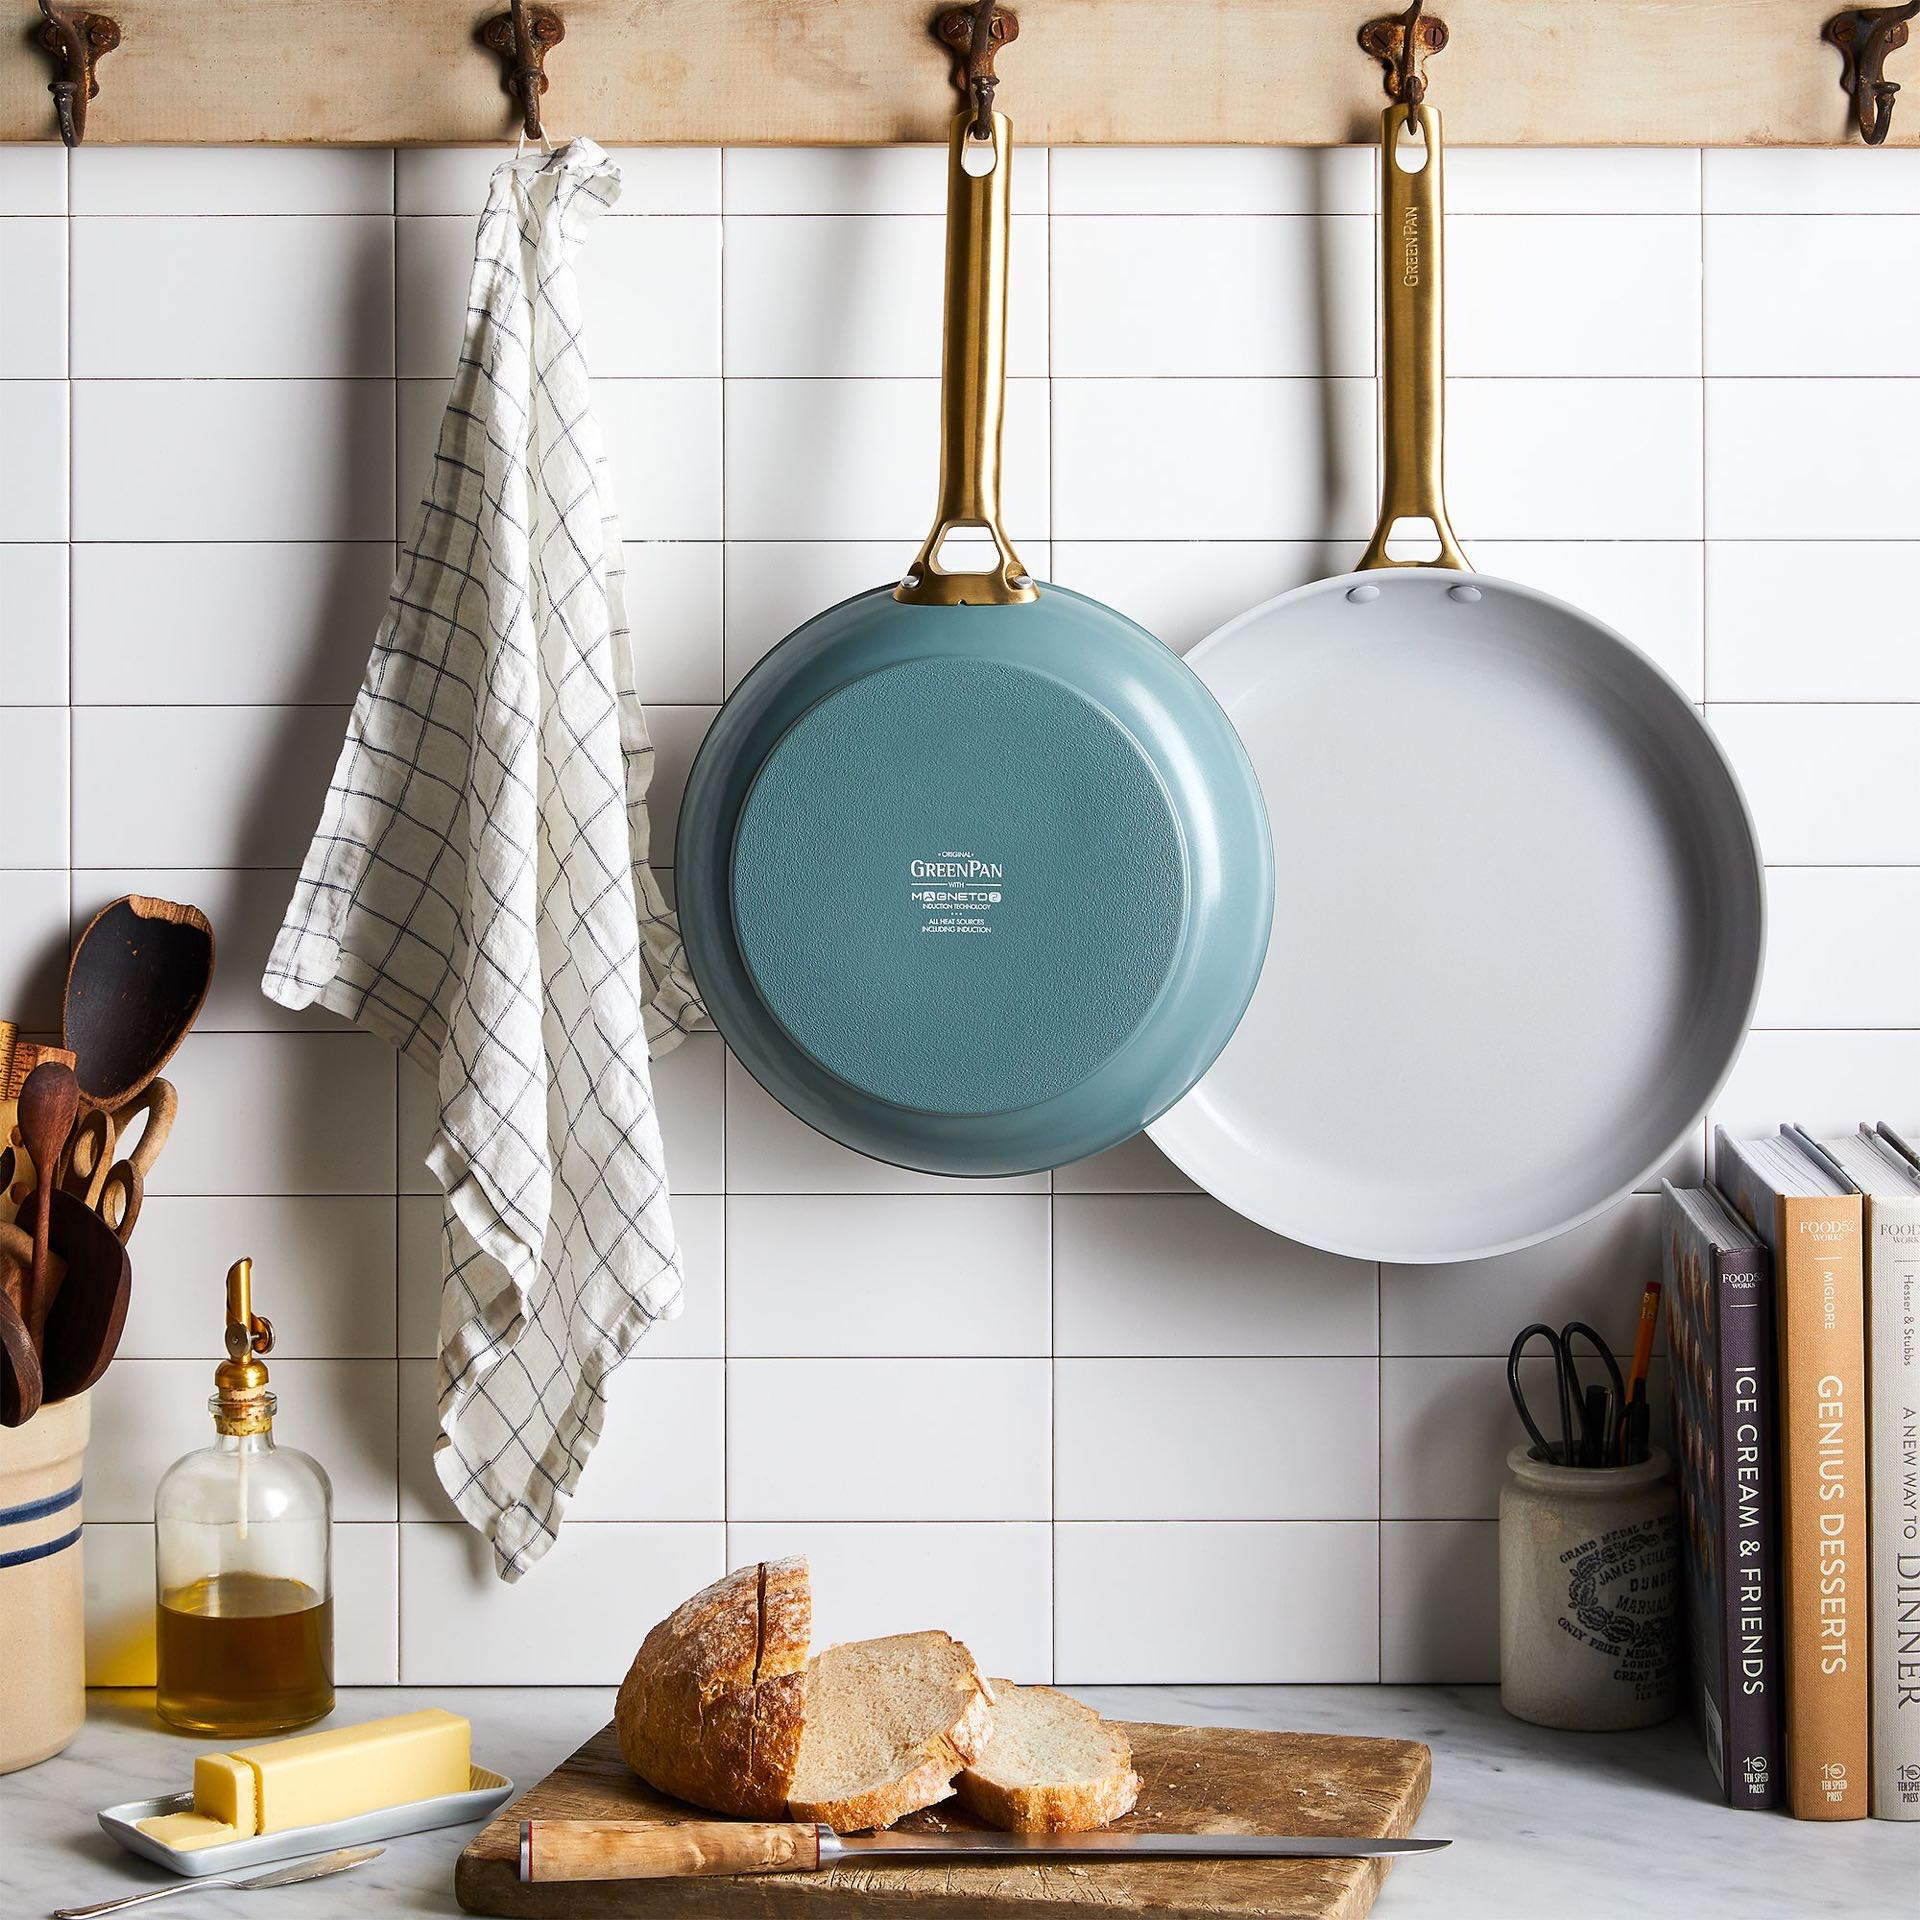 food52-x-greenpan-nonstick-skillet-set-of-2-kitchen